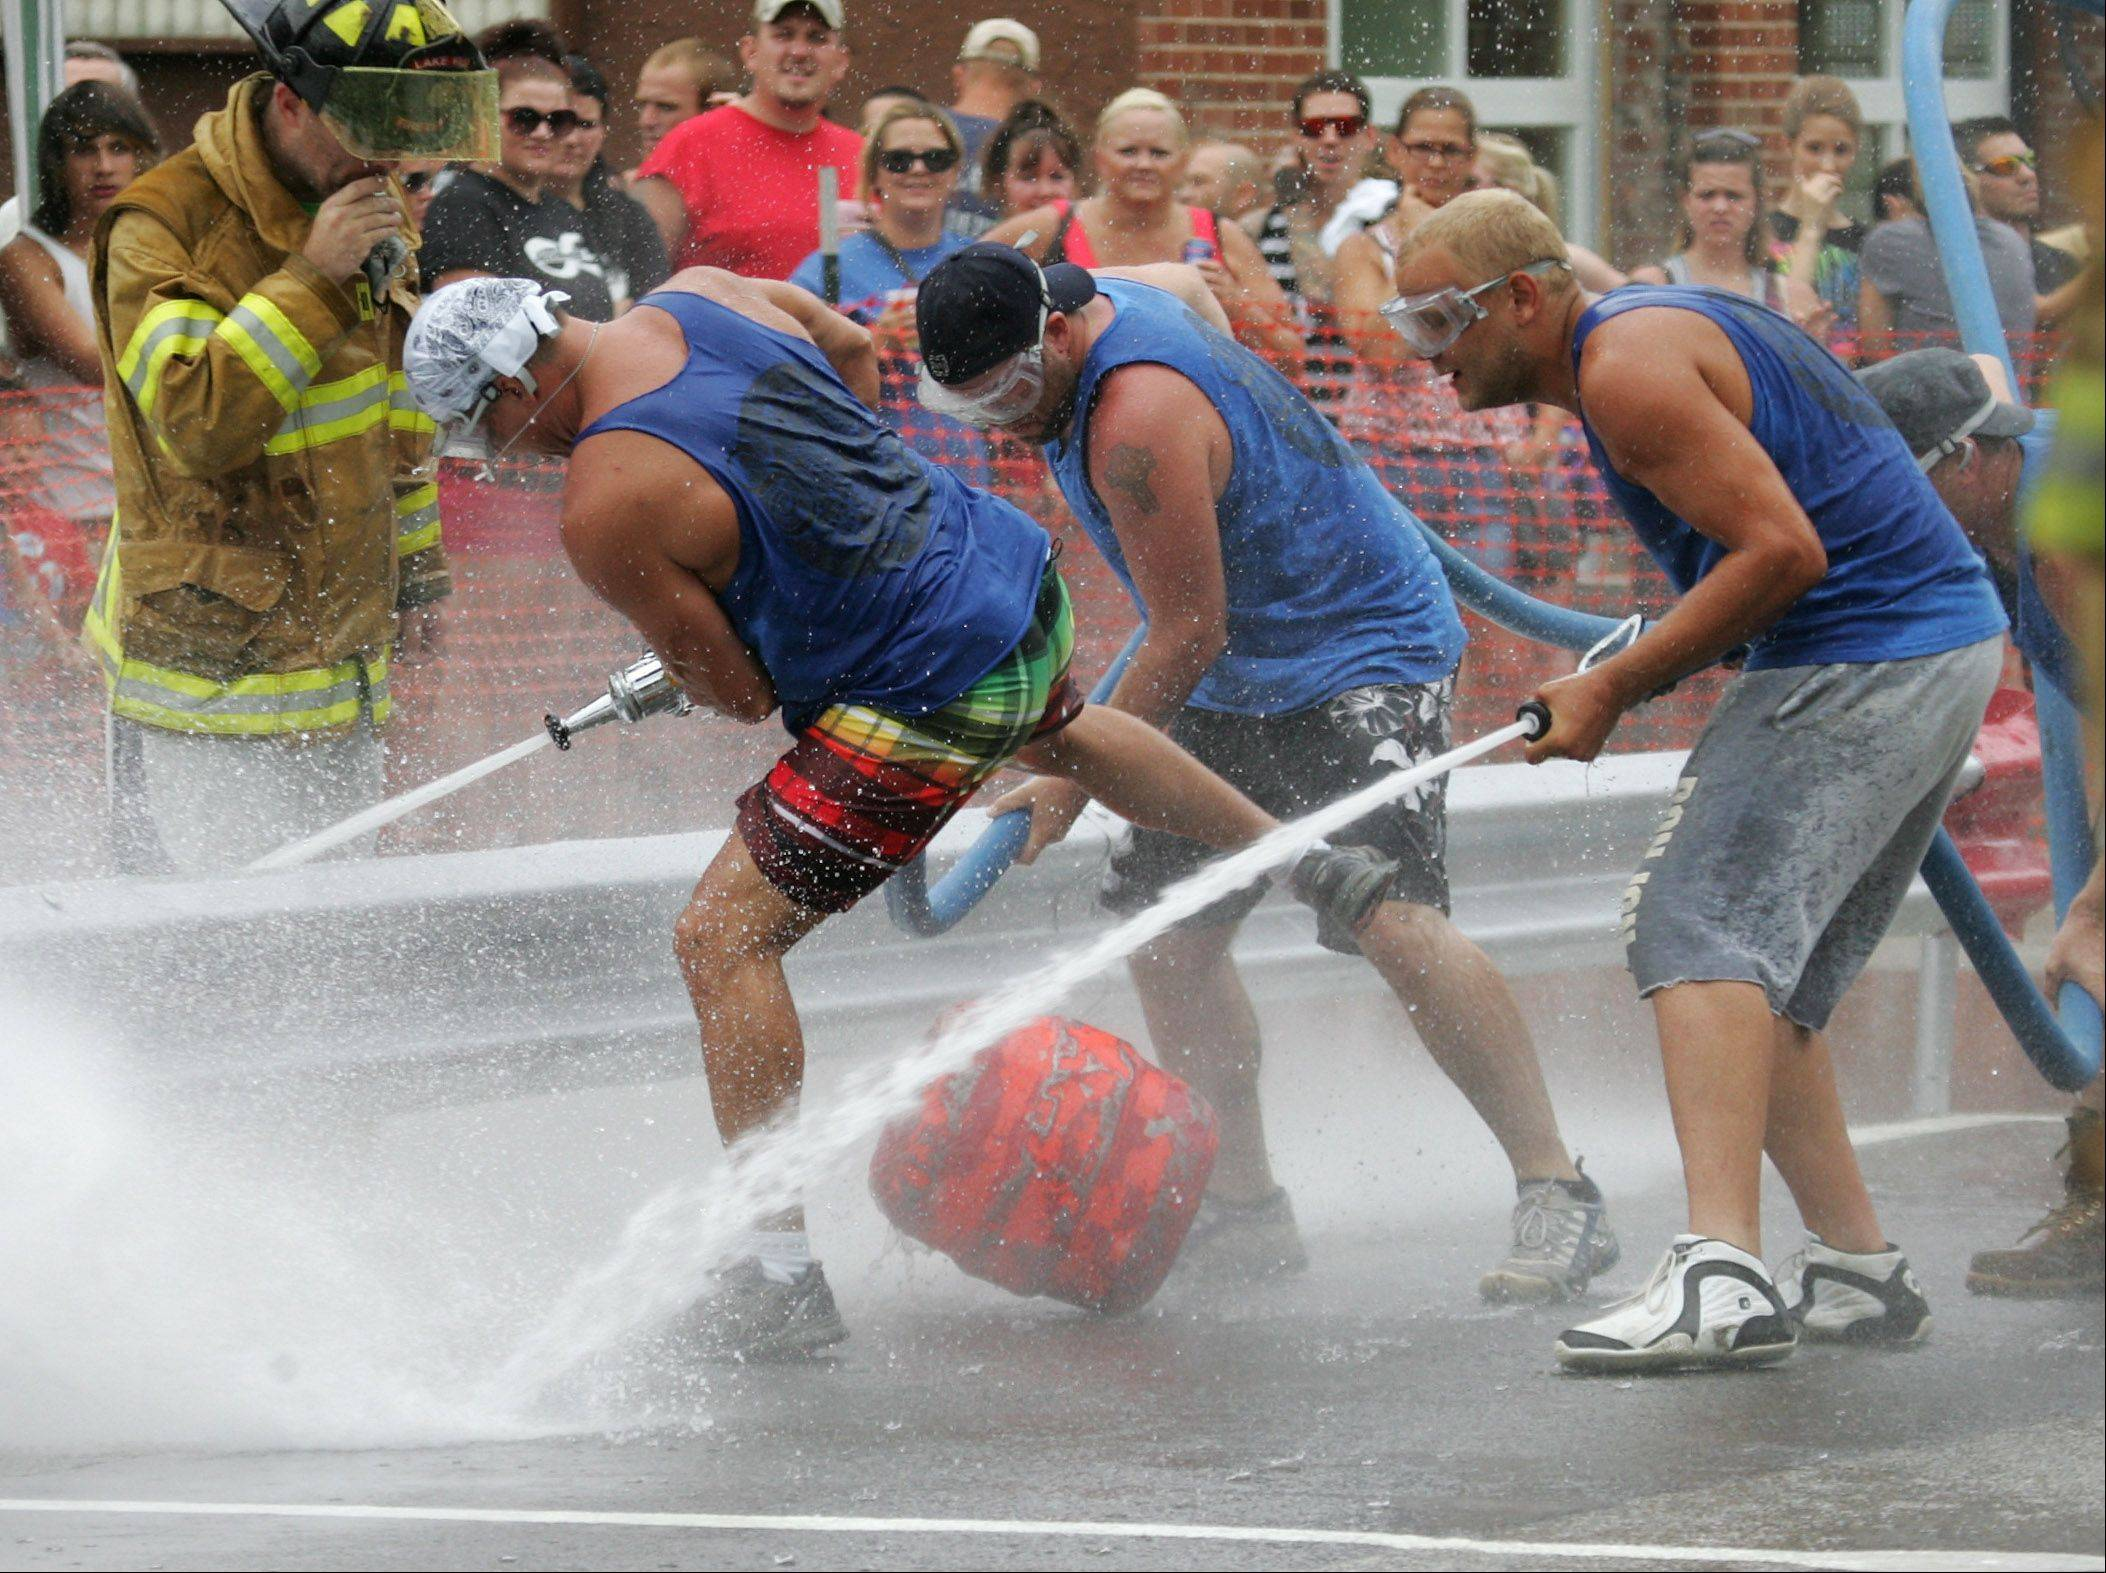 Bryan Bosack, left, and the rest of the Squad 2 team jump out of the way as the barrel goes shooting underneath them during the water fights Sunday at the 54th annual Fox Lake Fireman's Festival.